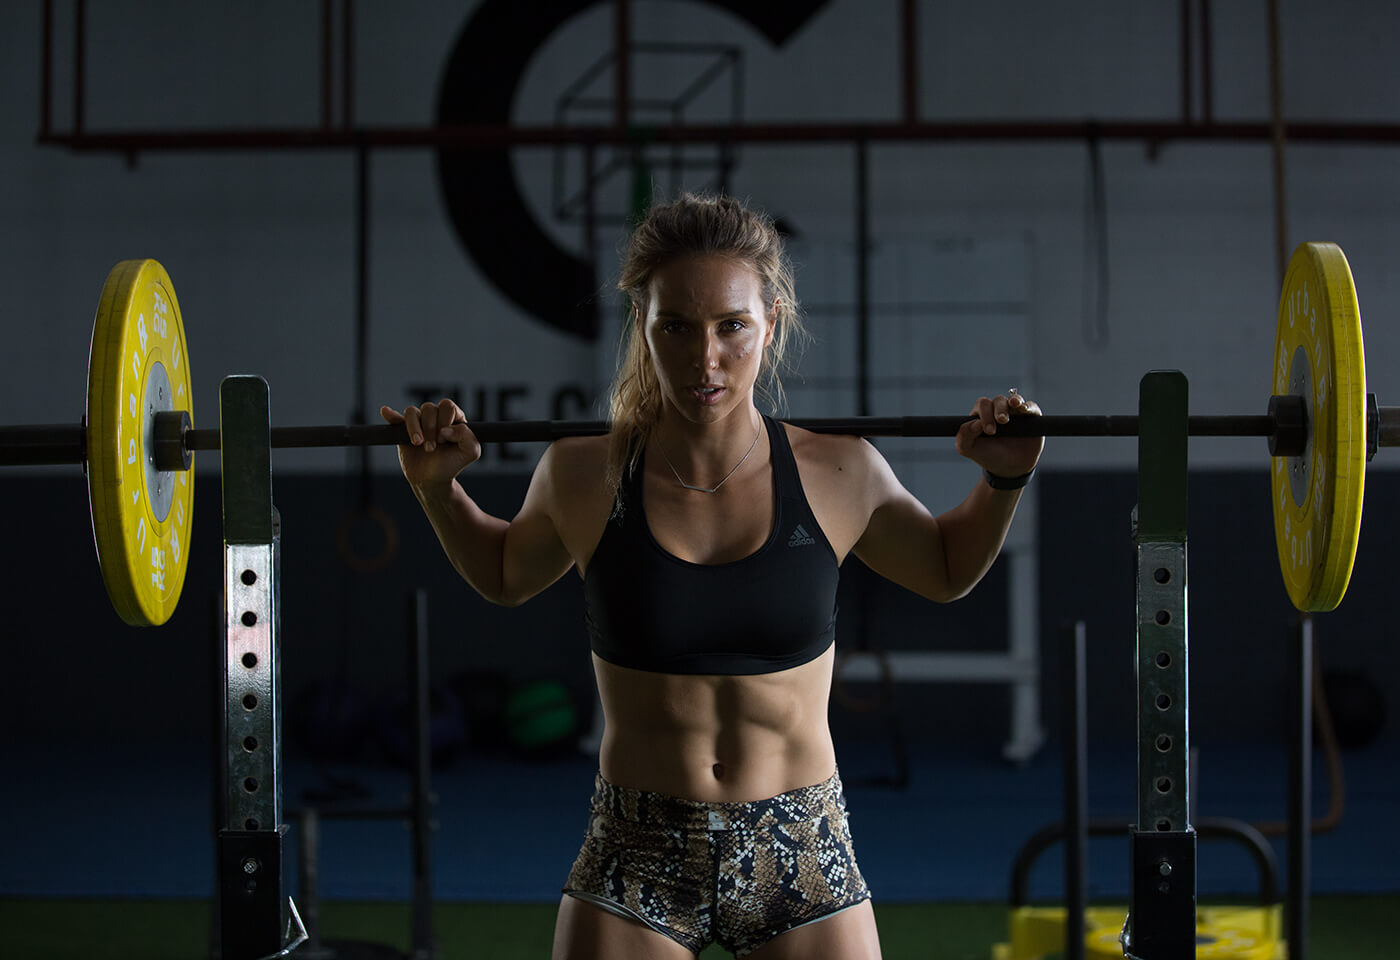 Image of Sally Fitzgibbons at the gym